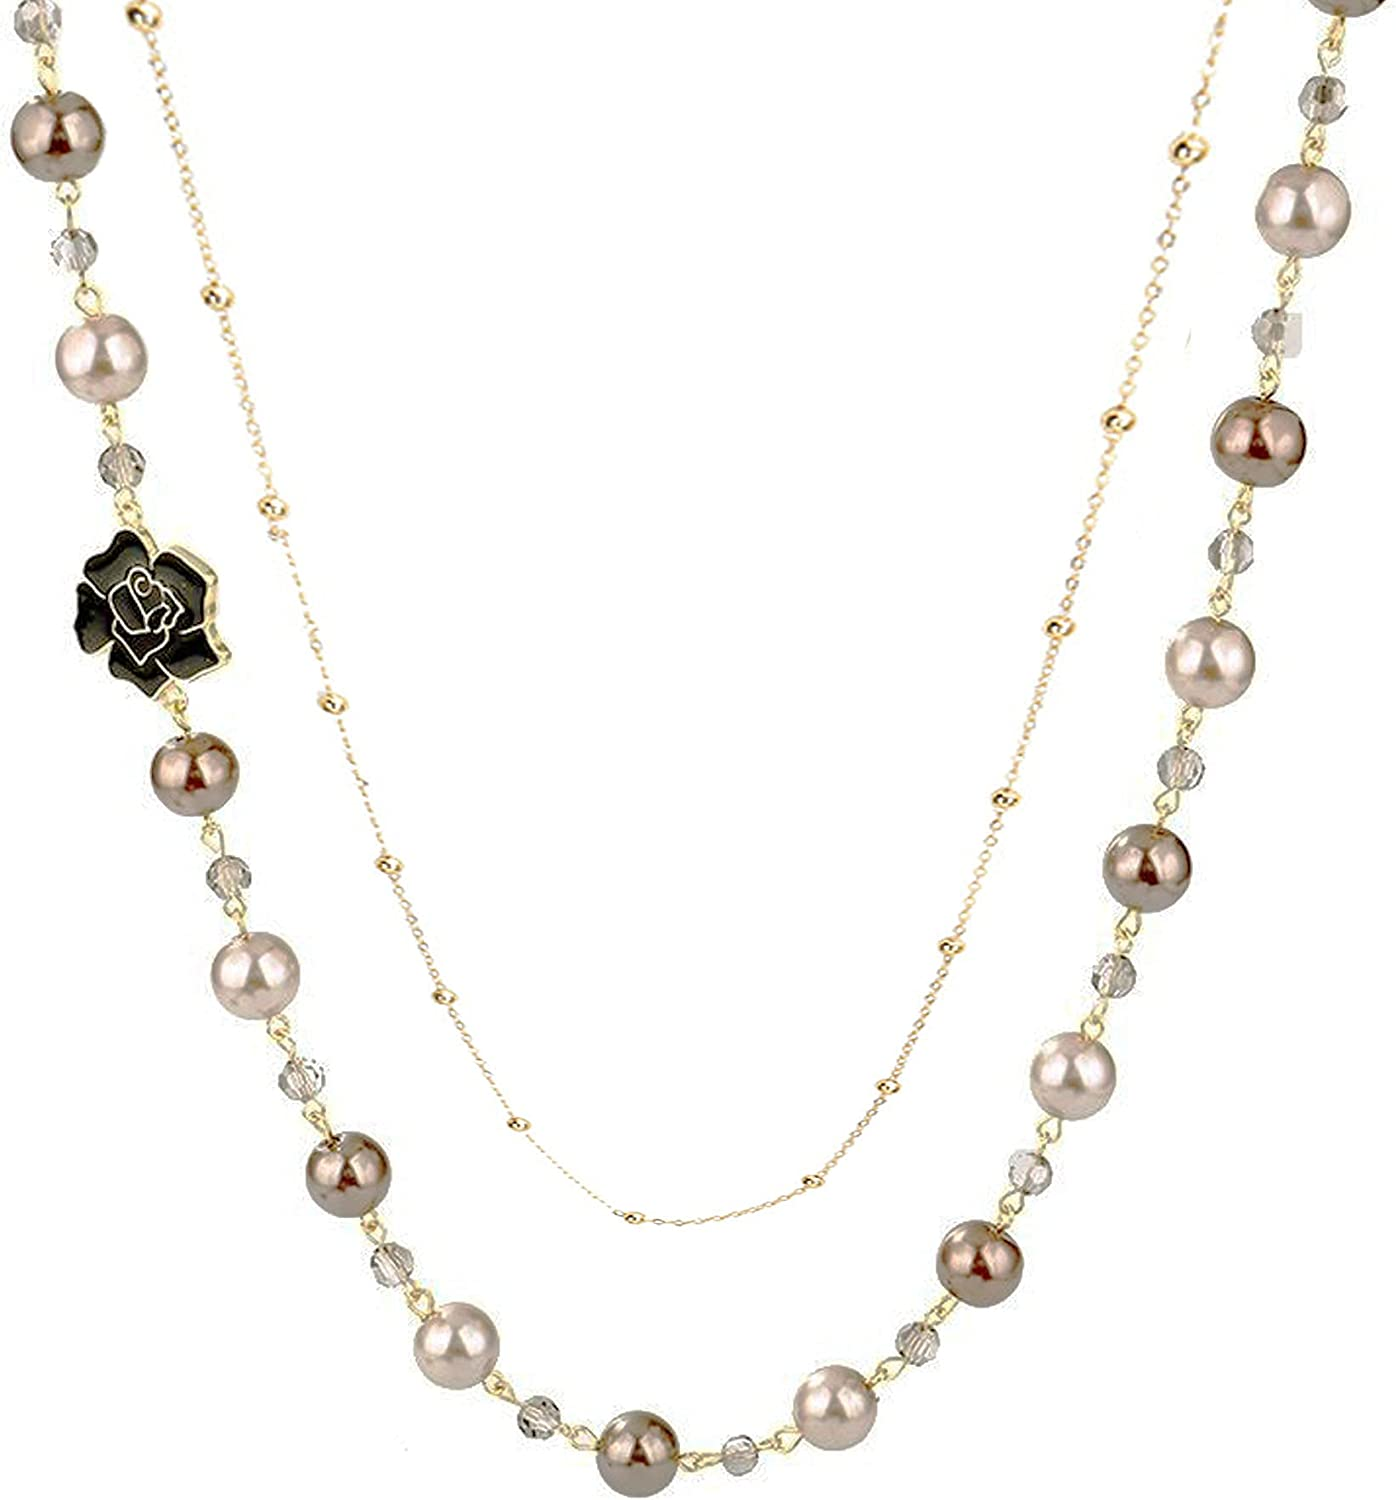 Bridal and Chic Long Imitation Pearl Camellia Flower Strand Double Layer Pendant Long Necklace for Women